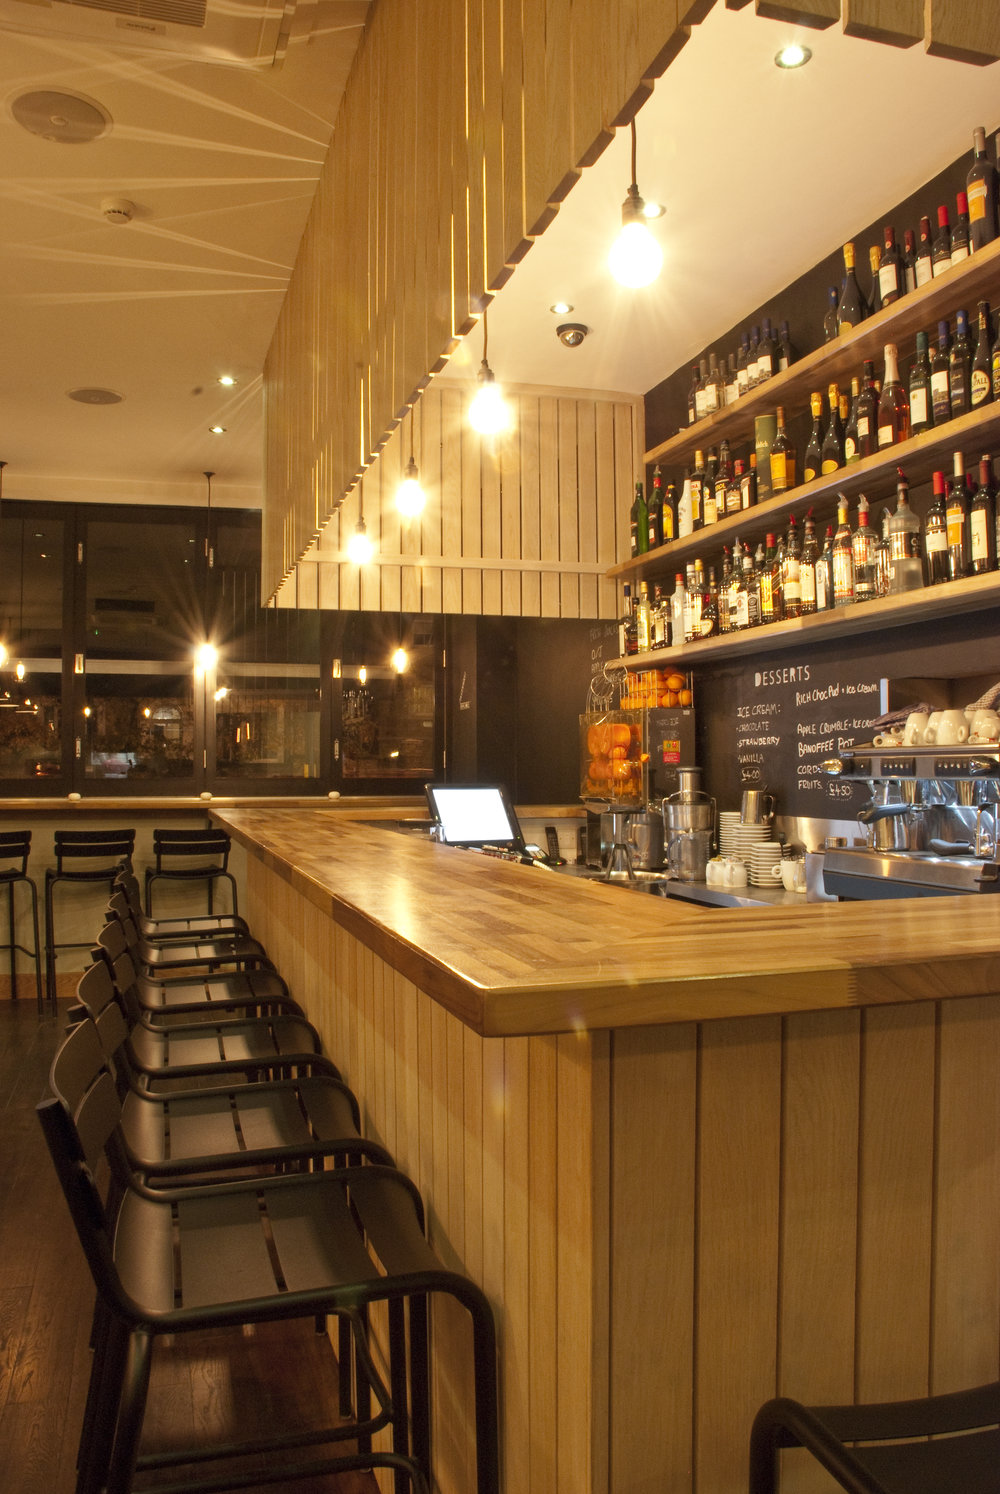 view towards front of bar.jpg